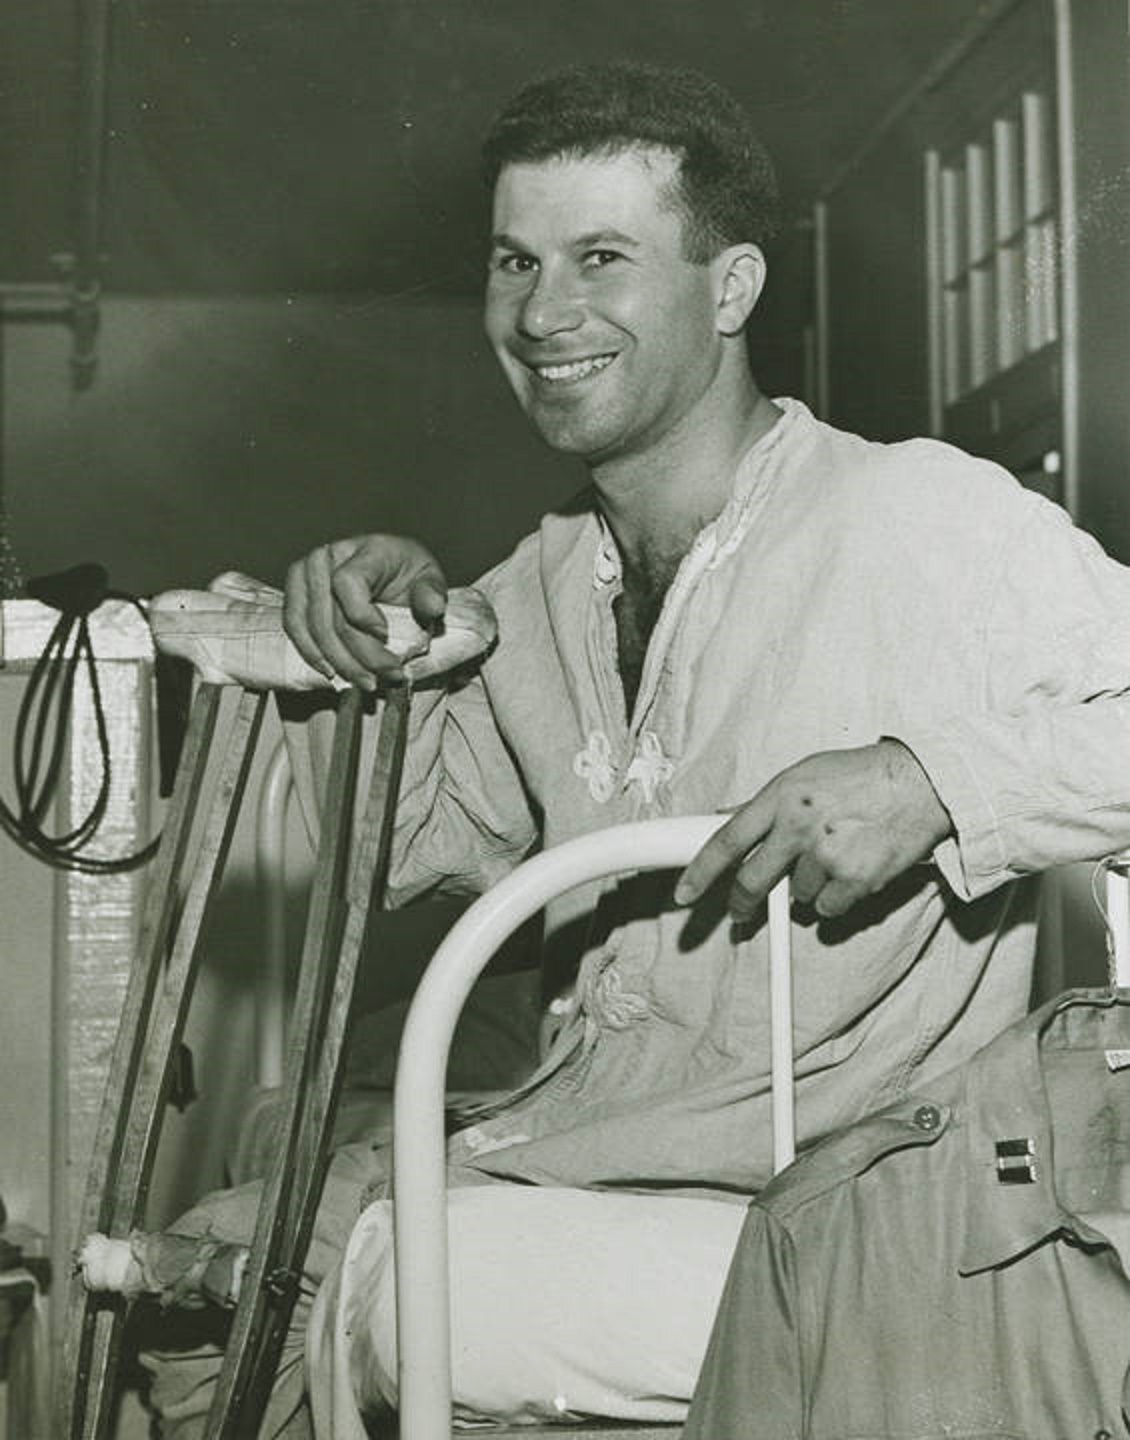 Photographs of wounded World War II veterans in 1945 at Northington Hospital in Tuscaloosa, Alabama